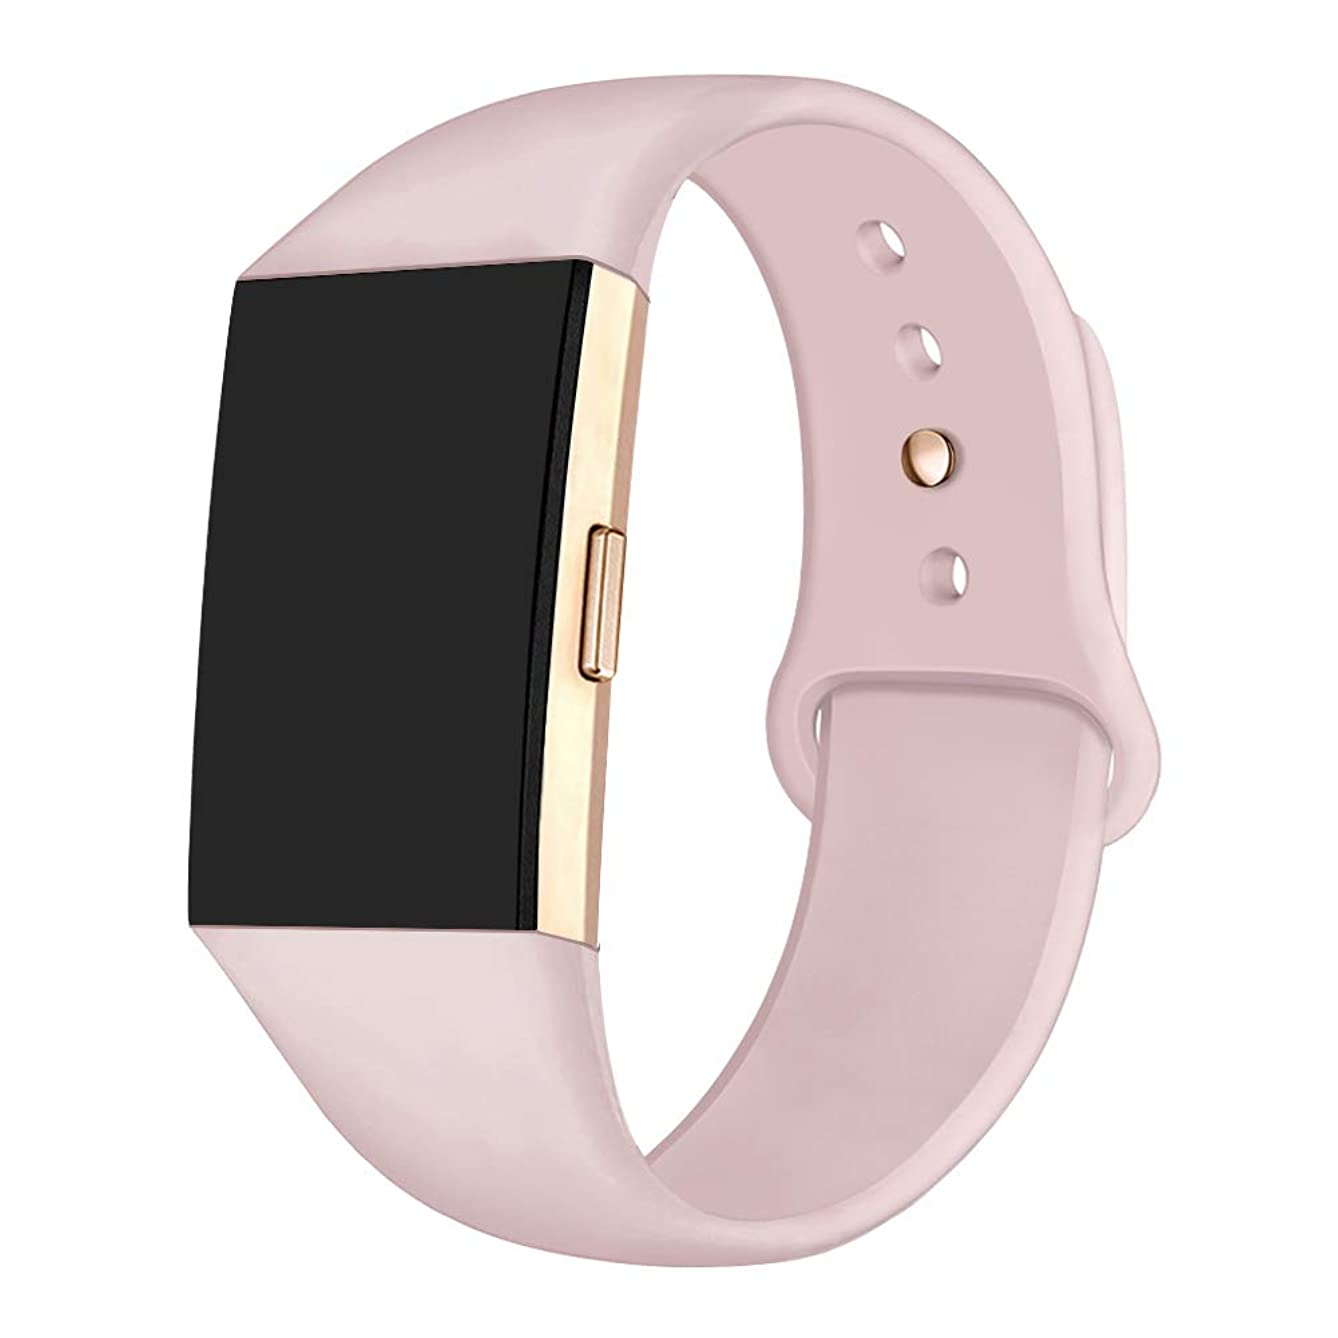 GHIJKL Sports Band Compatible Fit bit Charge 2, Soft Silicone Replacement Wristband for Fi tbit Charge 2,Women Men, Large Small